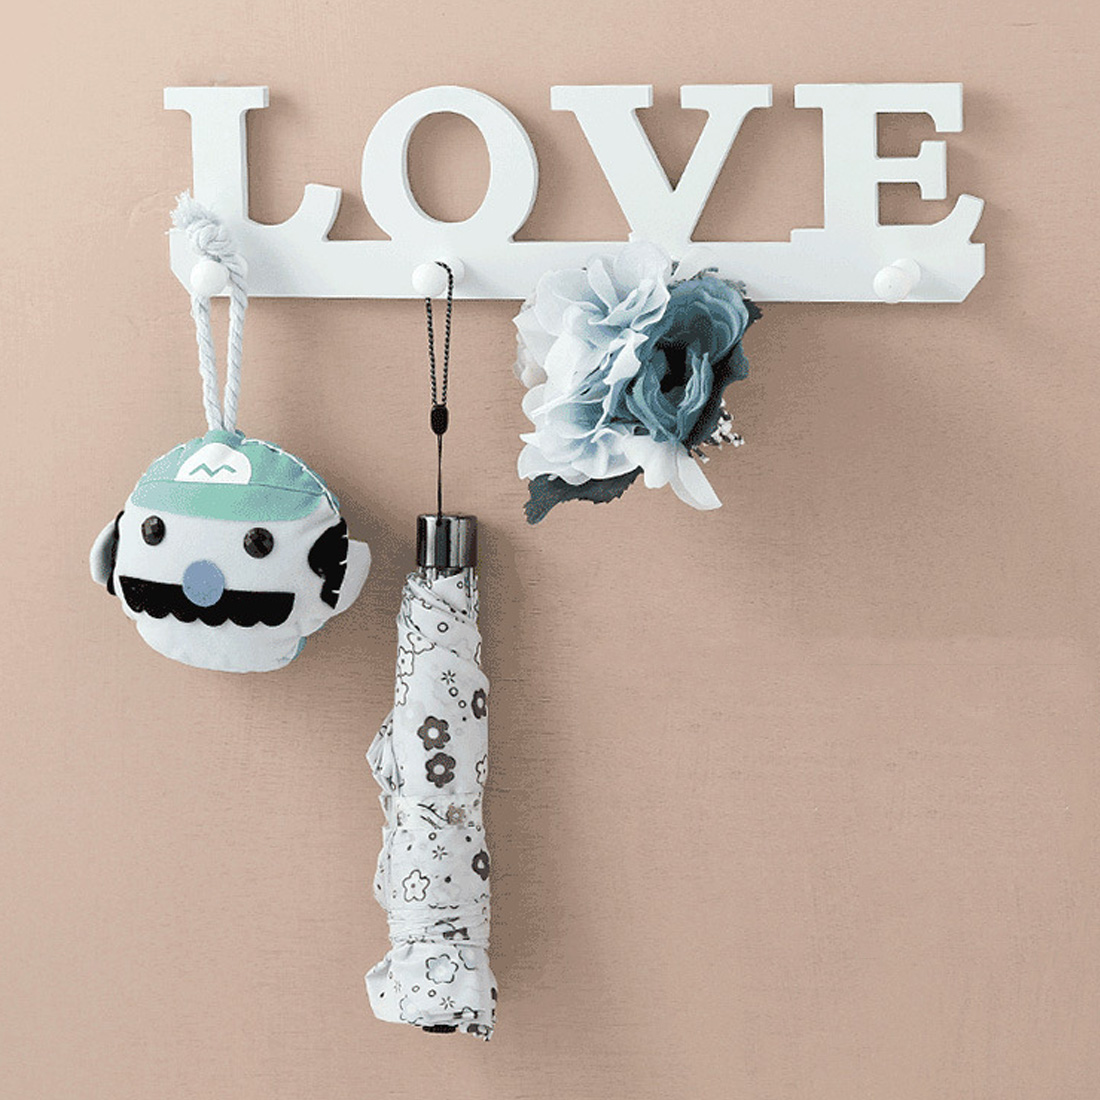 Retro White Love Hat Hat Key Ring Clothes Bag Robes Hanging Screw Ledge Door Bathroom Home Decoration Hanger Key Ring Wall Hook